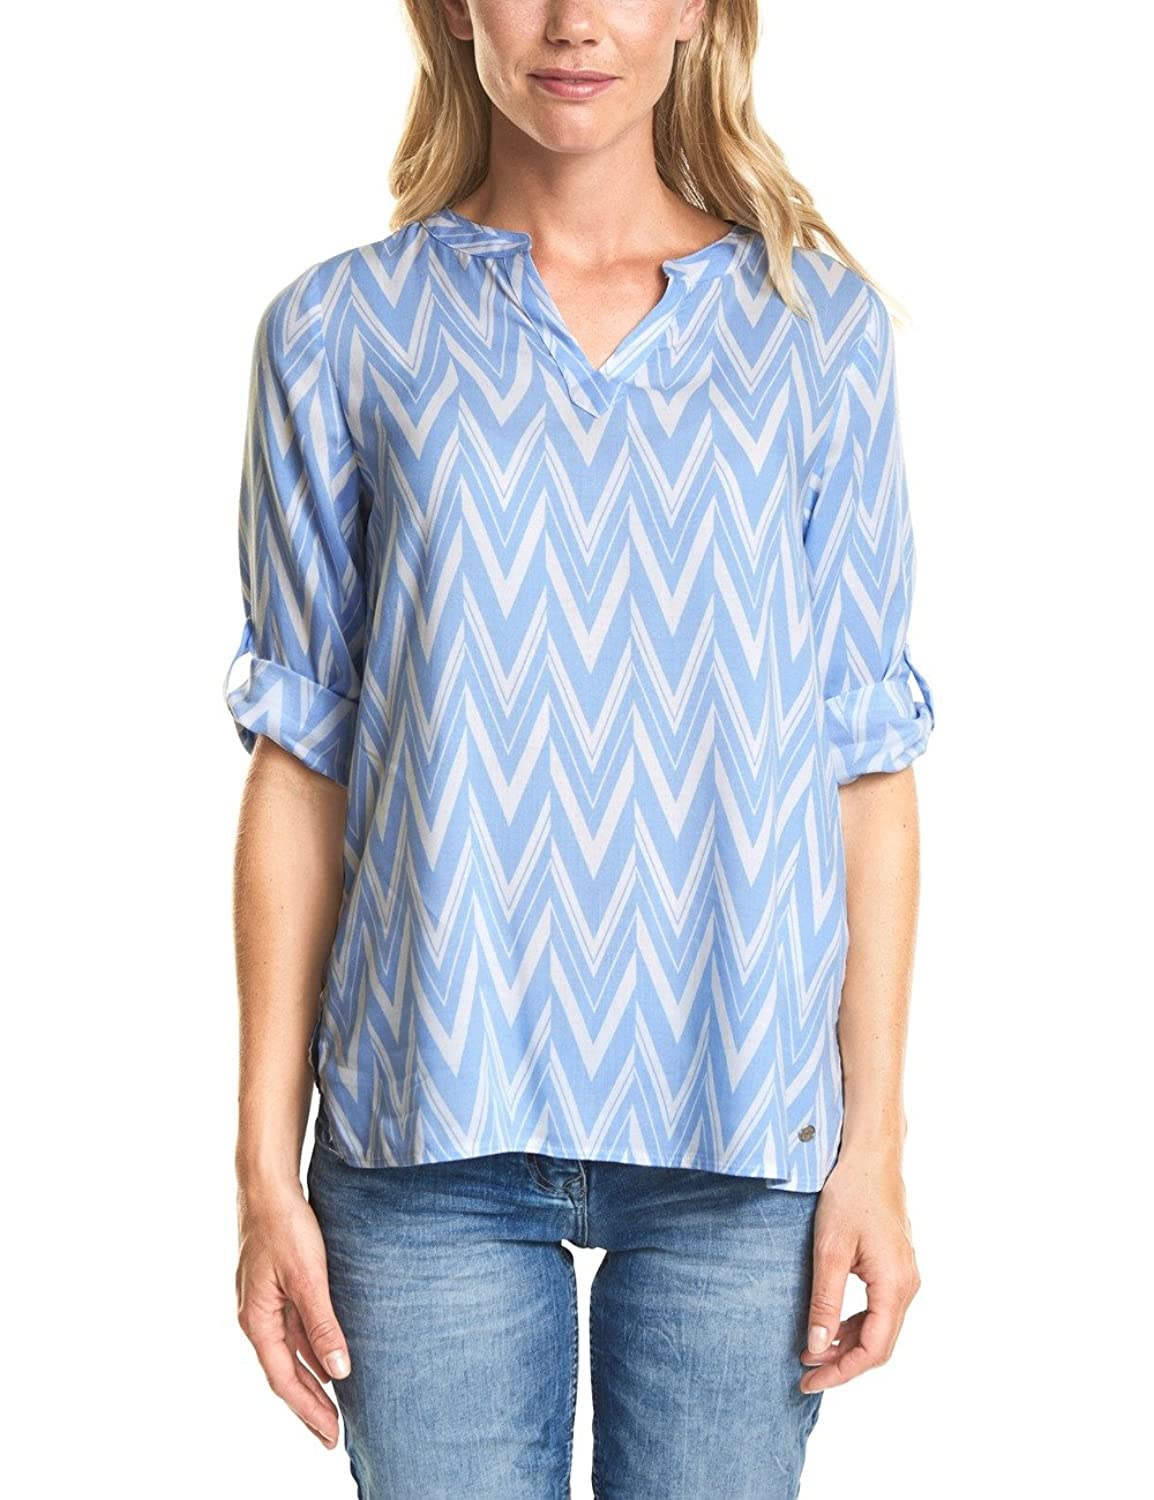 Cecil 341040, Blouse Femme, Blau (Powder Blue 21389), Medium (Taille du Fabricant: Medium)